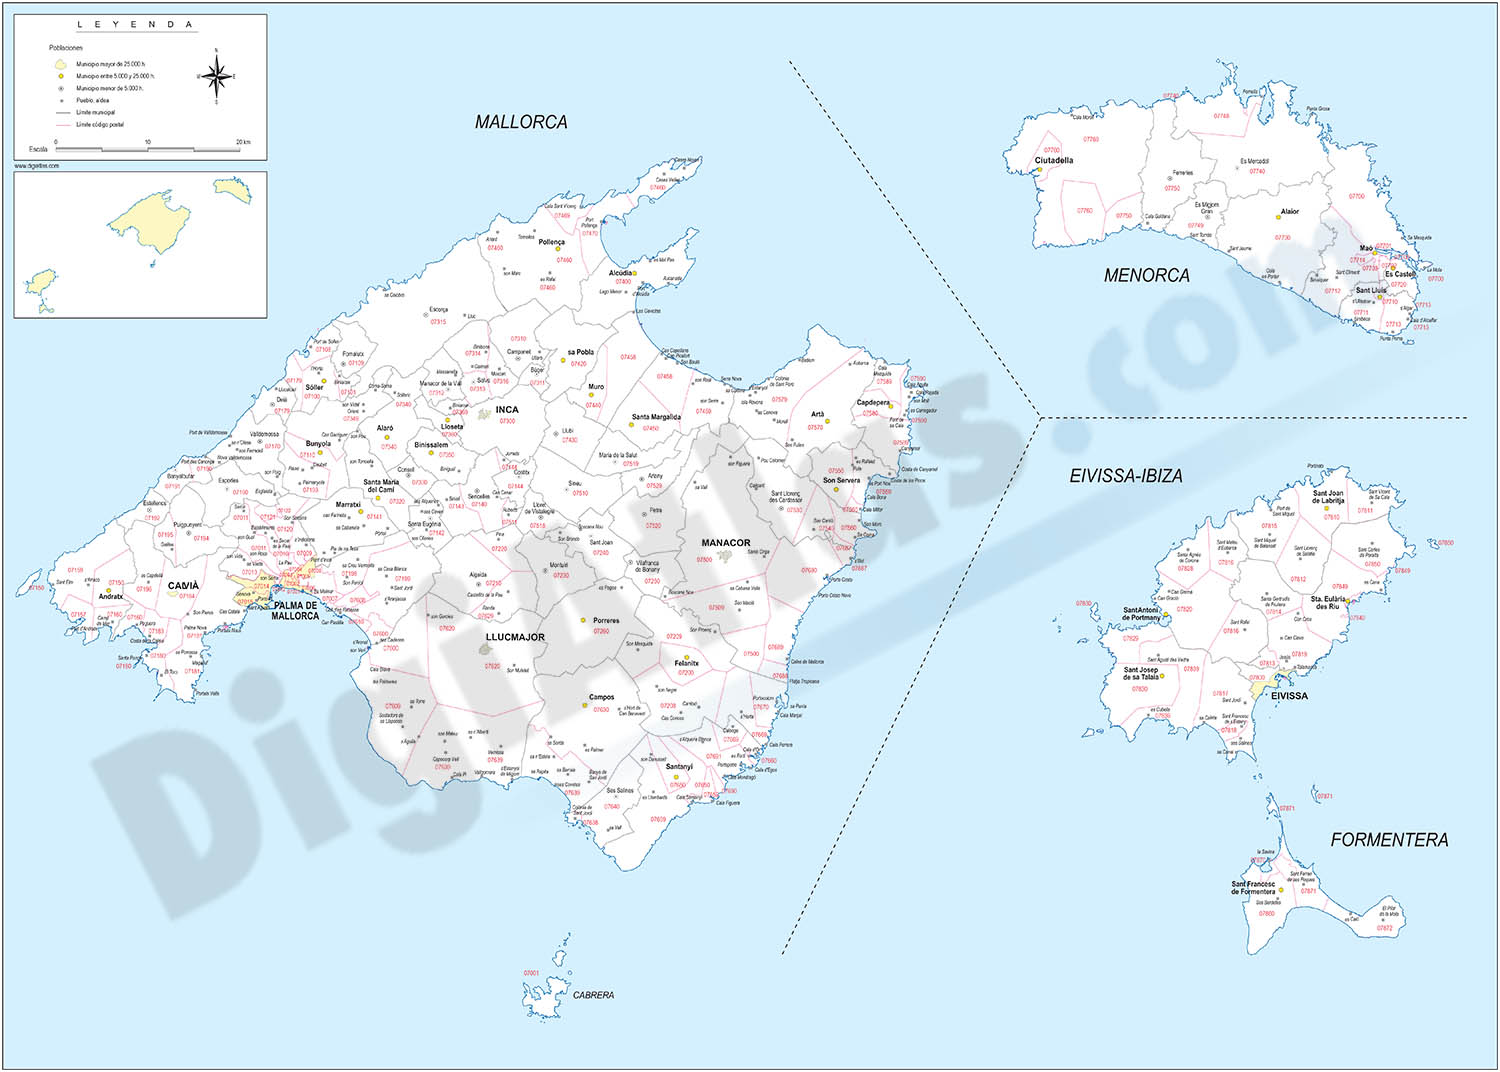 Map of Balearic Islands with municipalities borders and postal codes